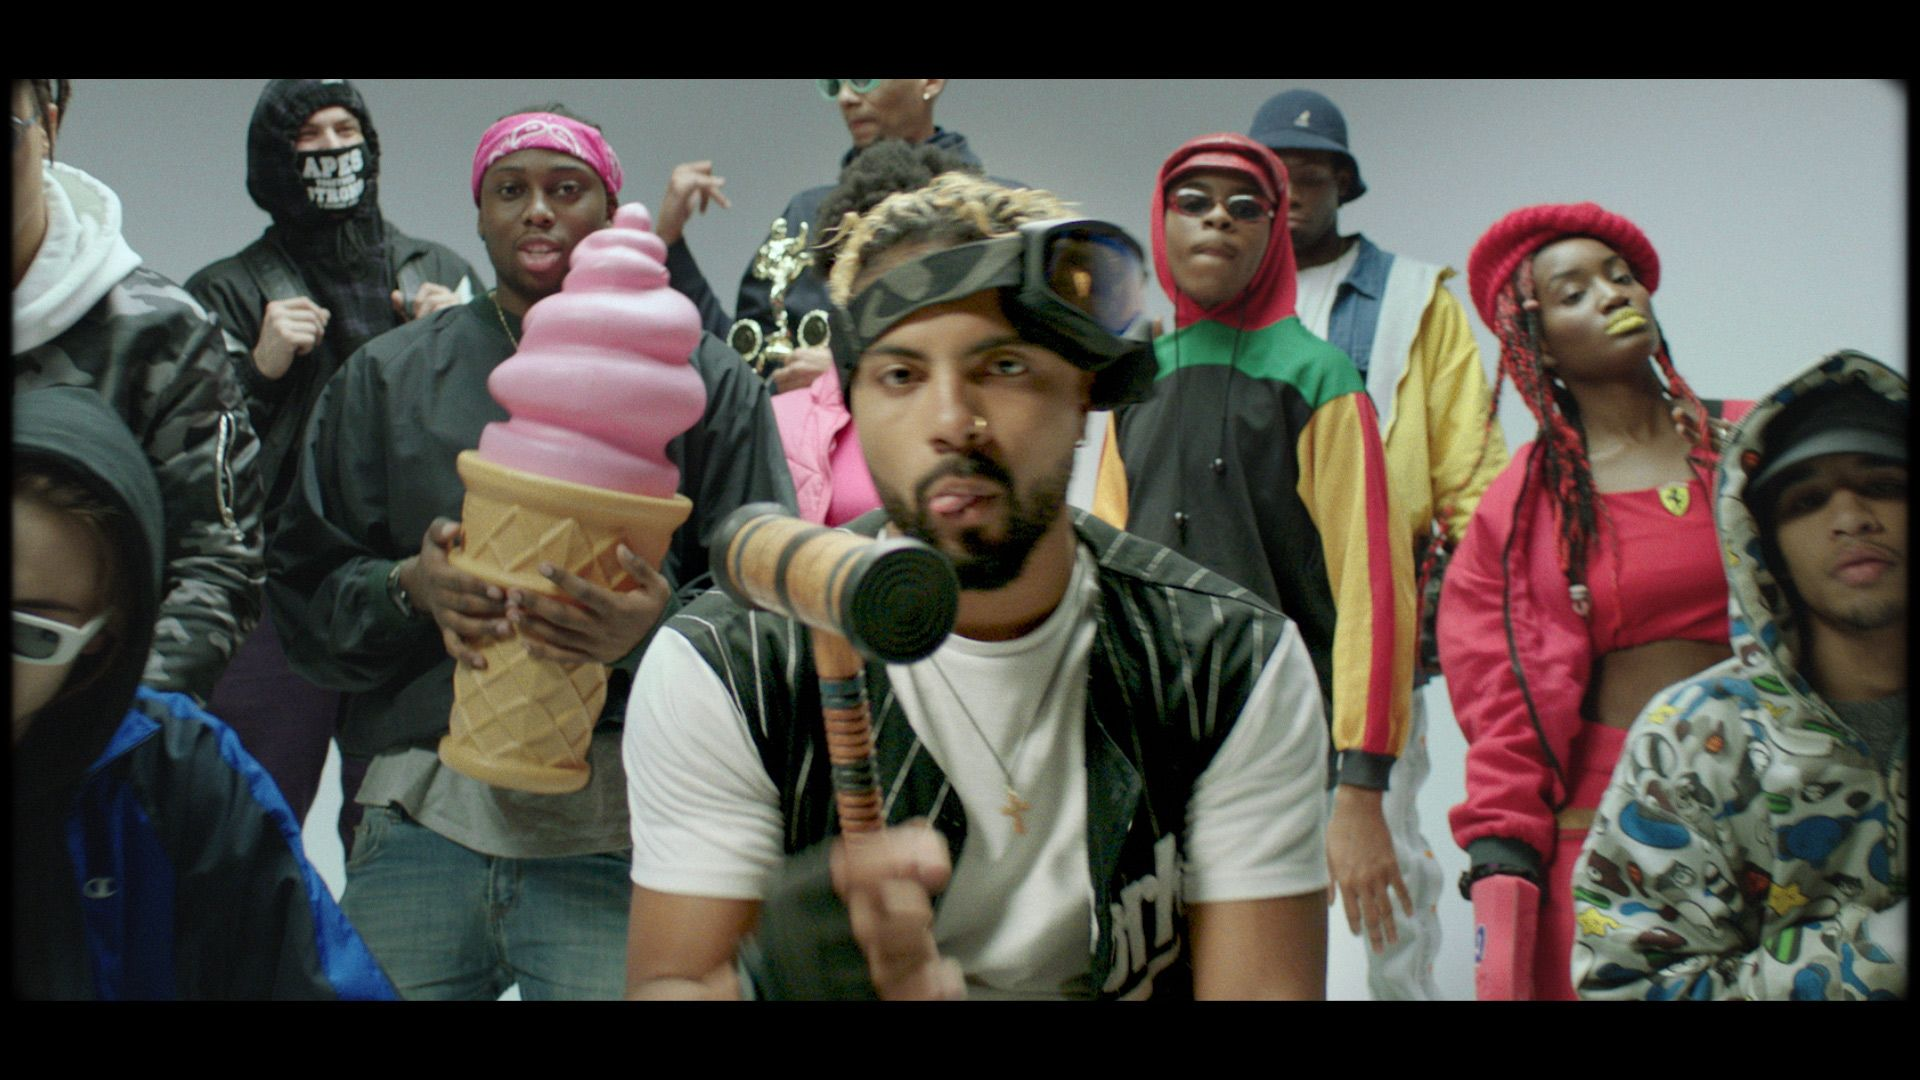 group of black people dancing for rapper Zach Zoya in music video Who Dat filmed by Les Gamins